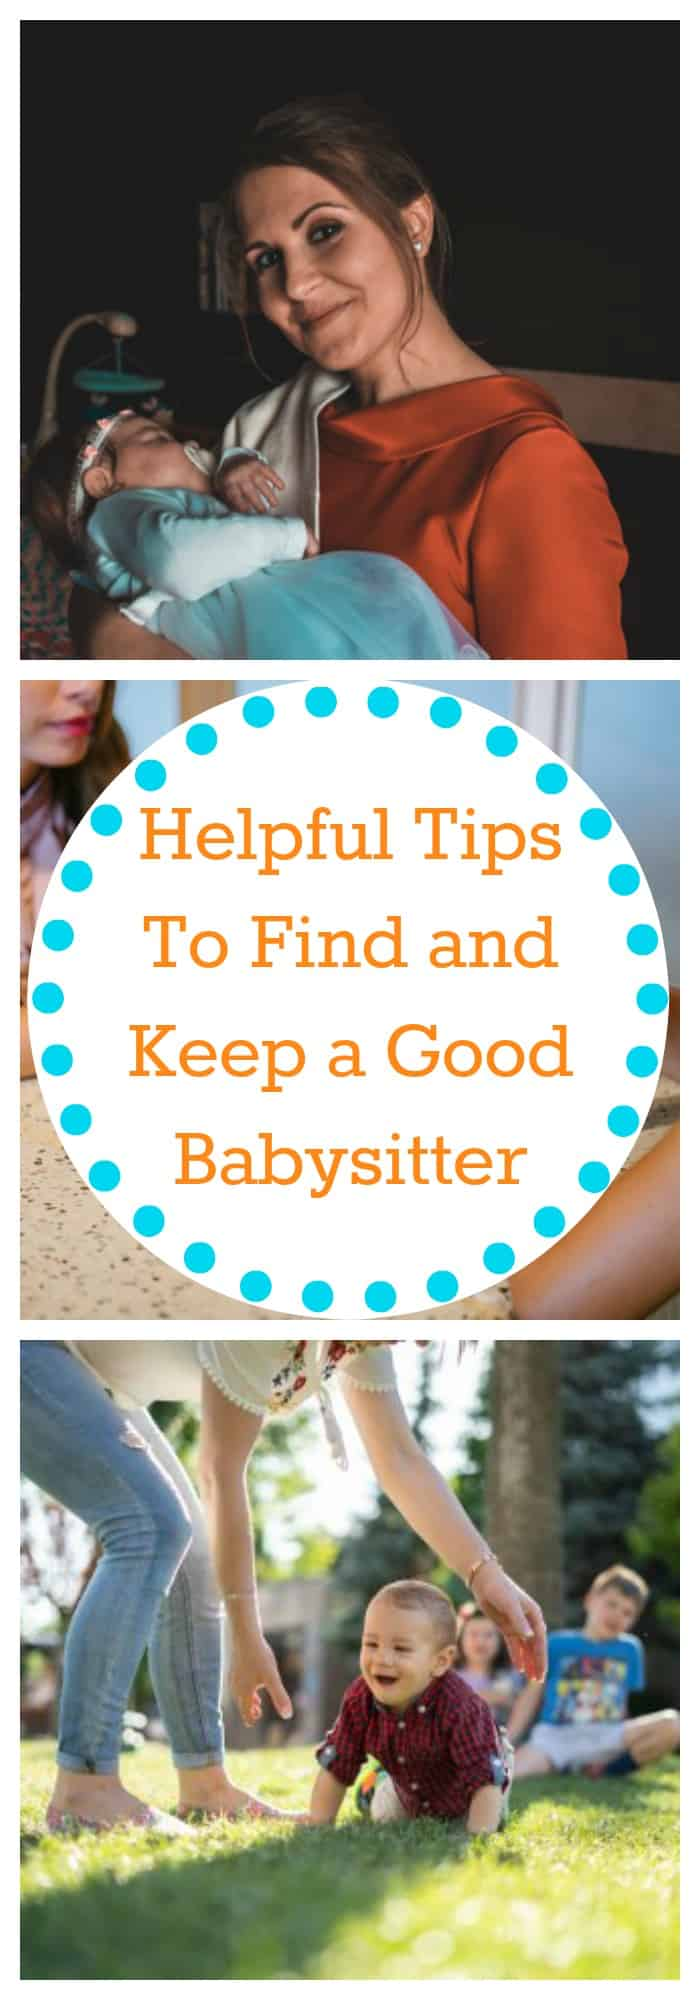 Helpful Tips to Find and Keep a Good Babysitter